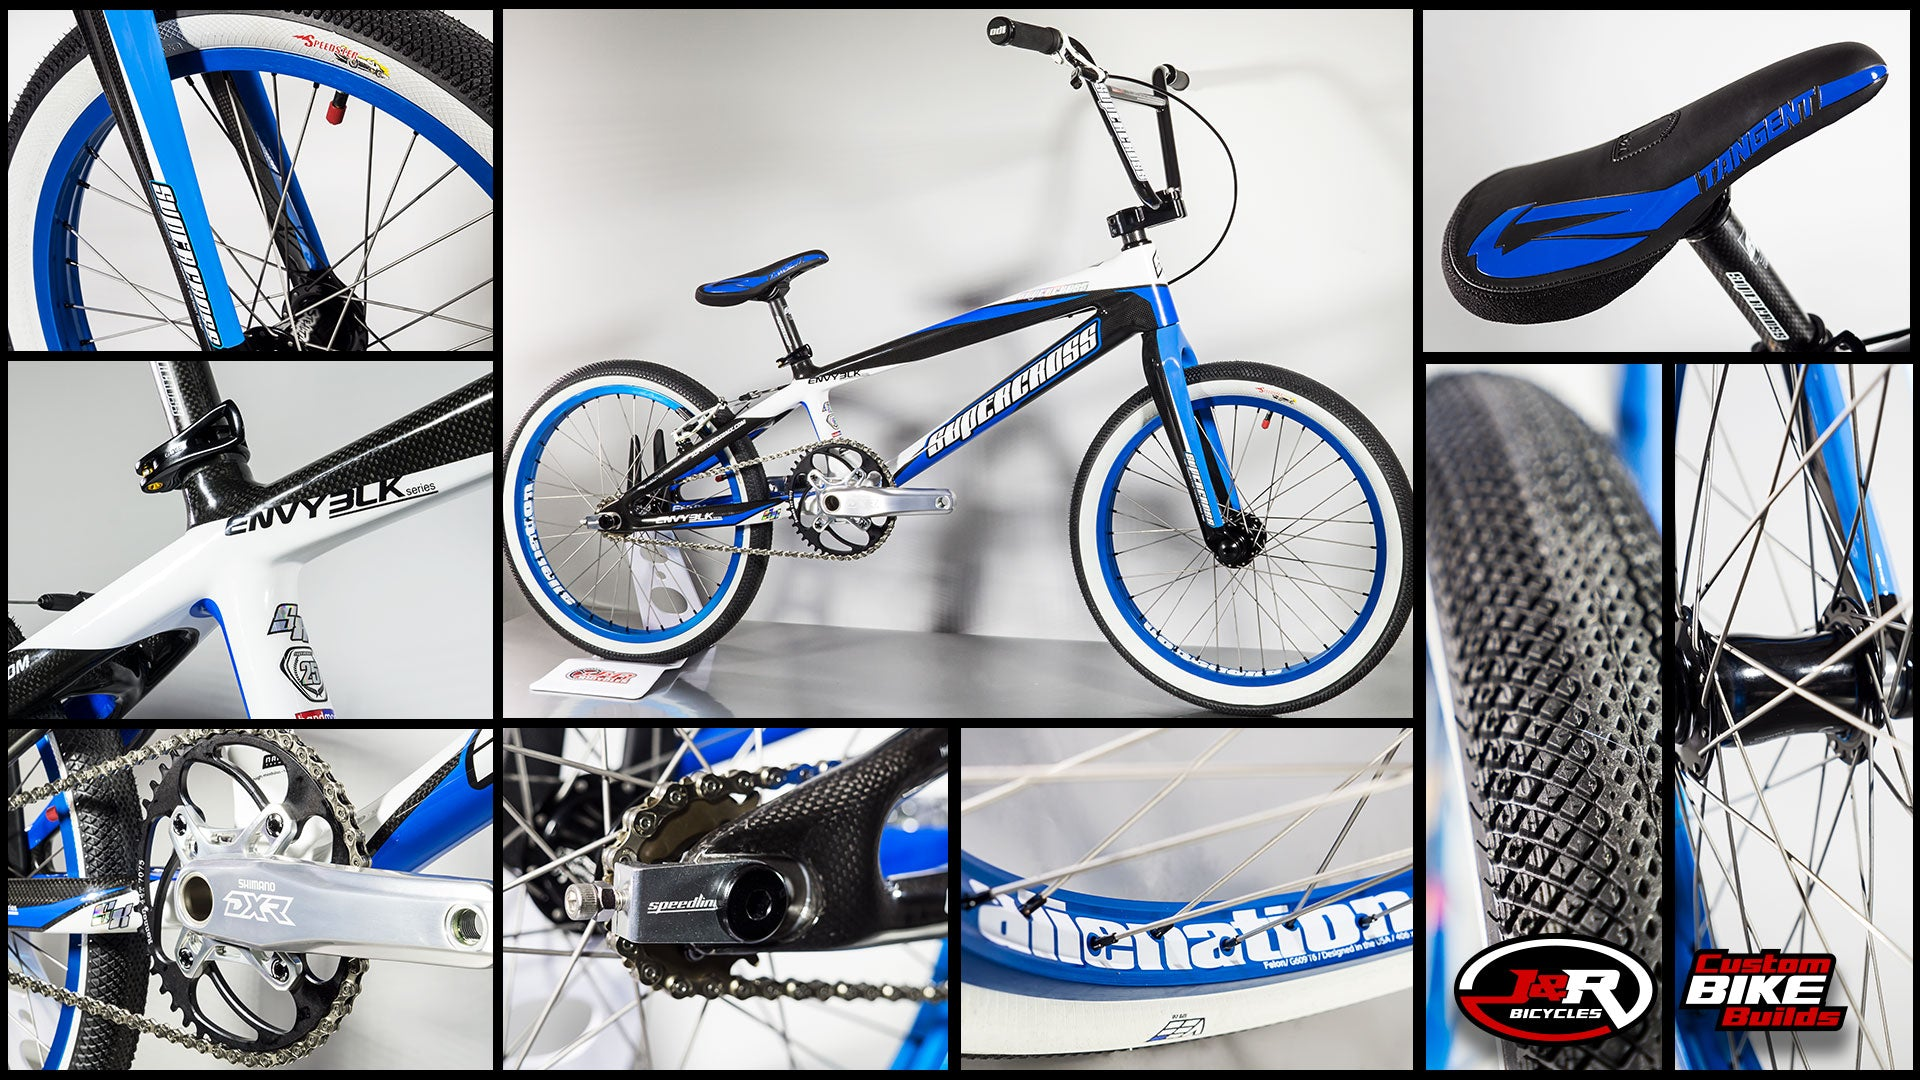 J&R Custom Build: Blue Macdaddy SX Carbon